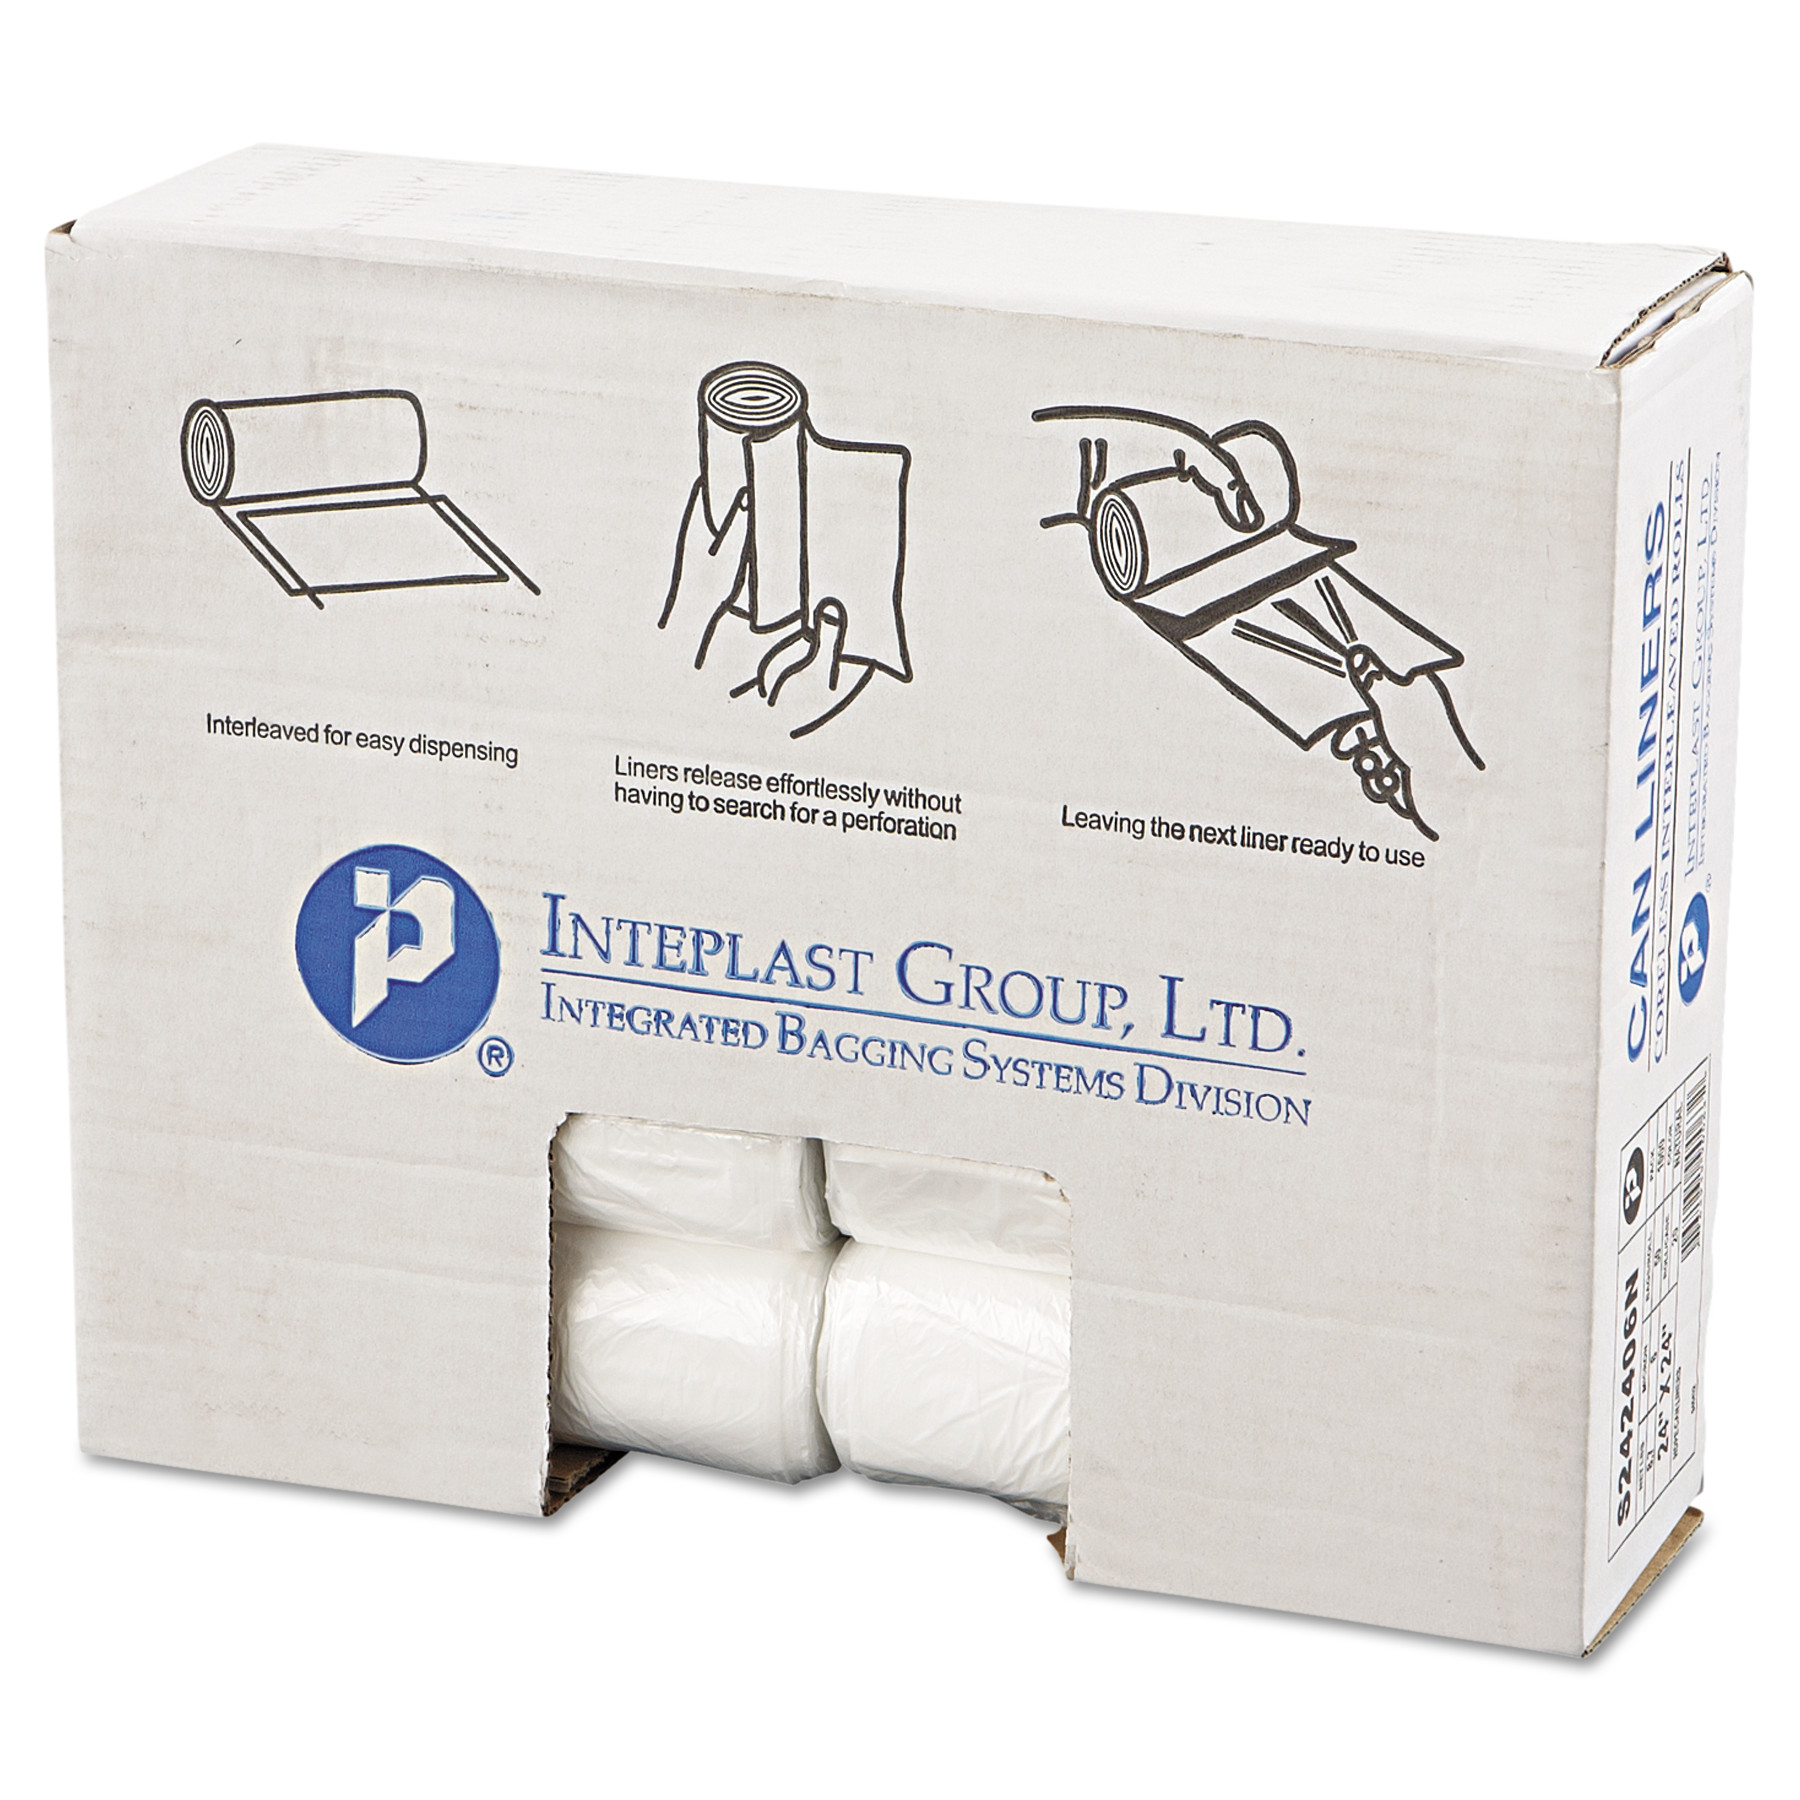 Inteplast Group High-Density Can Liners, 10 Gallon, Natural, 50 count, (Pack of 20)